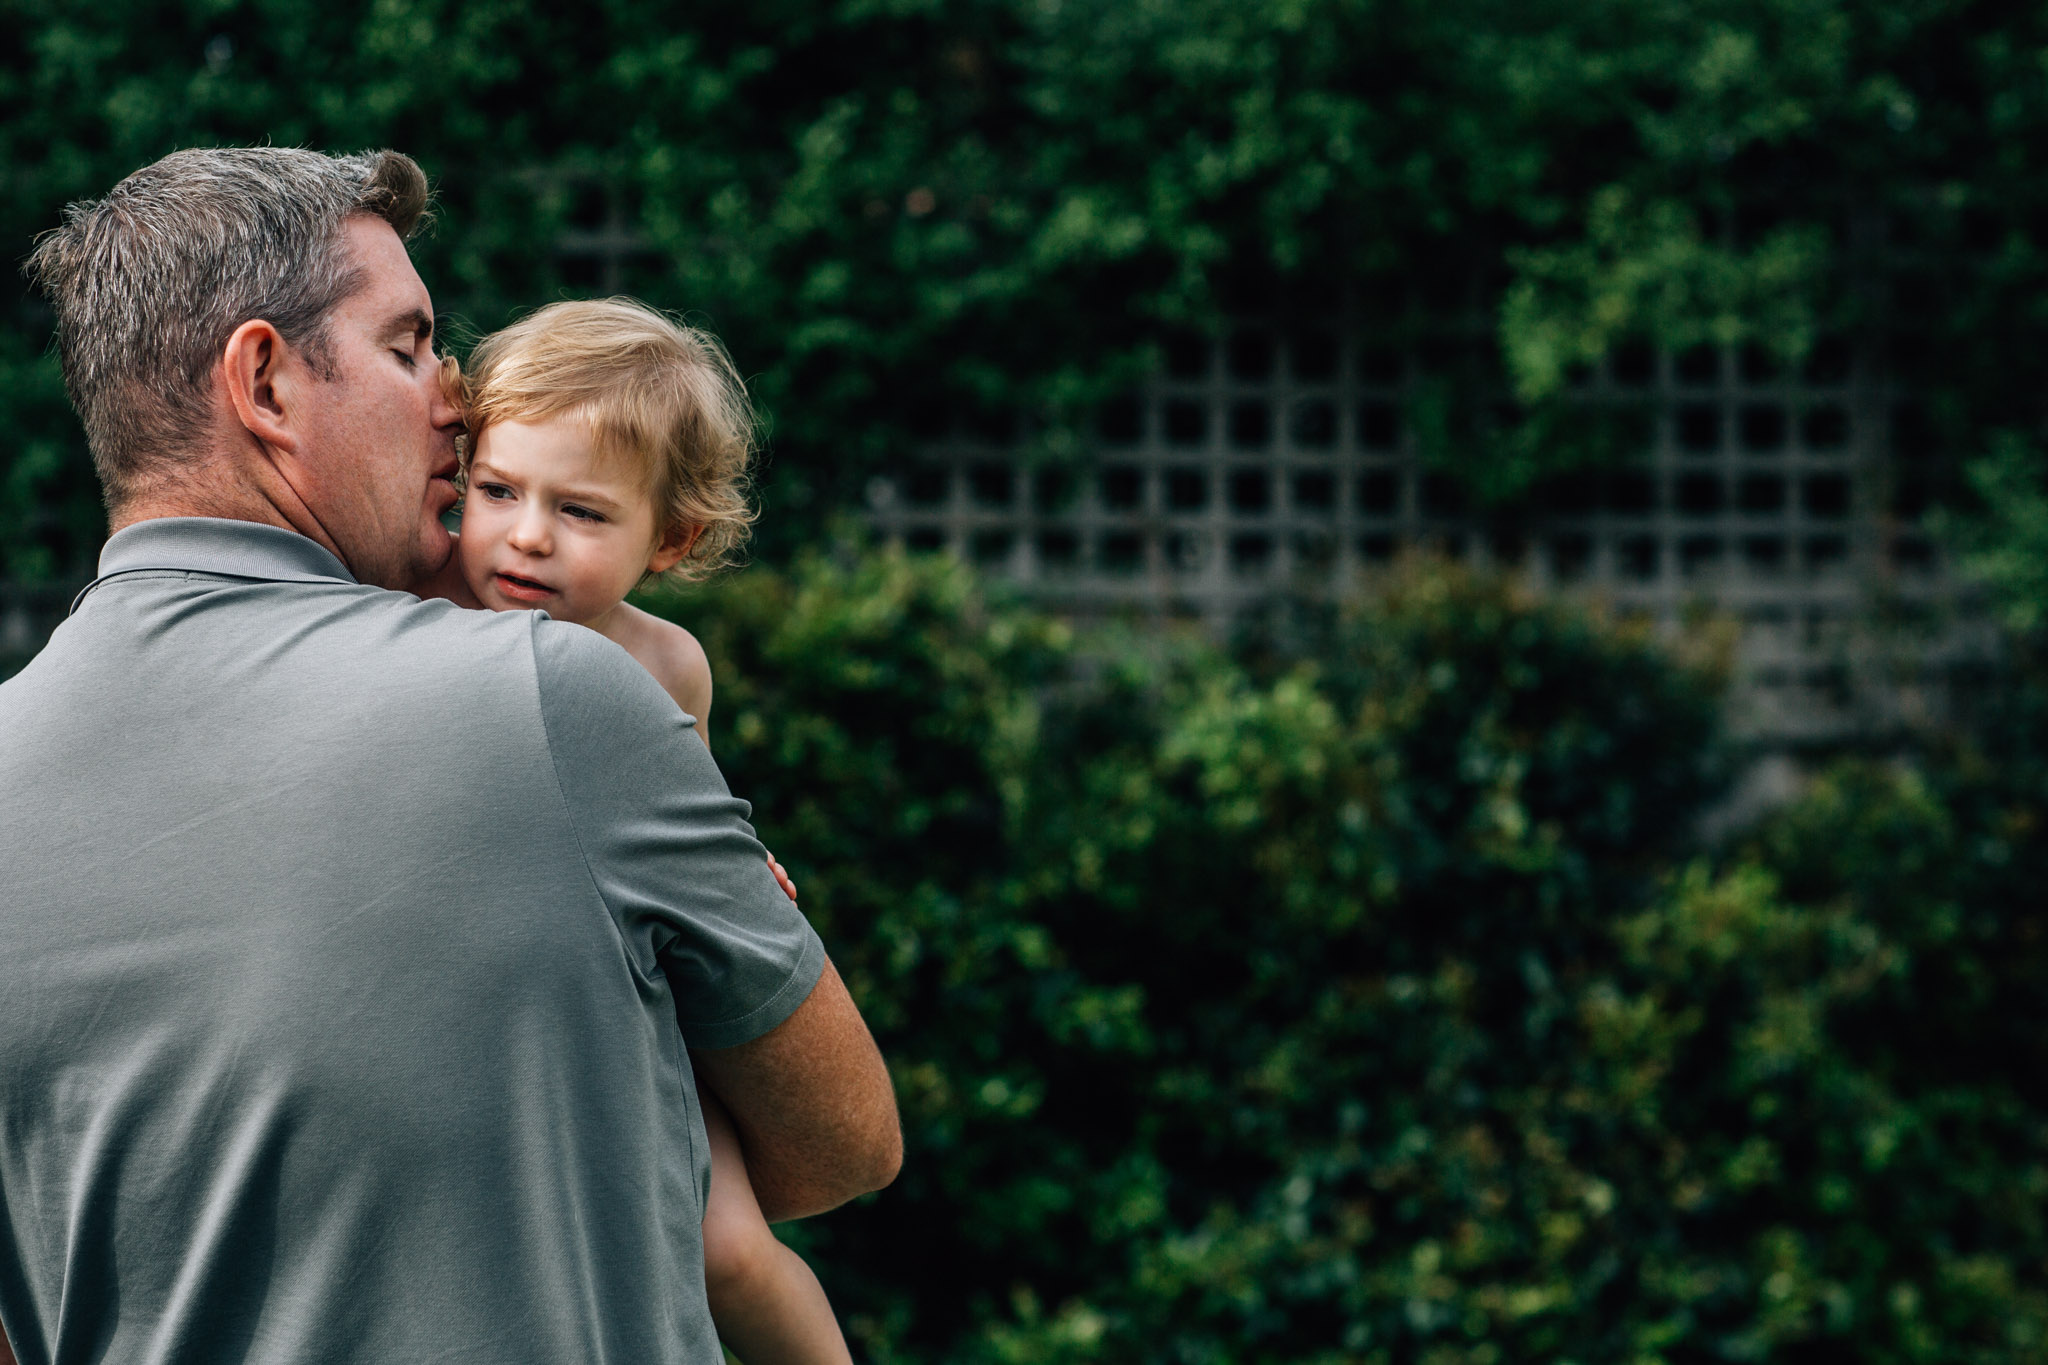 daddy-whispering-something-in-his-toddlers-ear (1 of 1).jpg